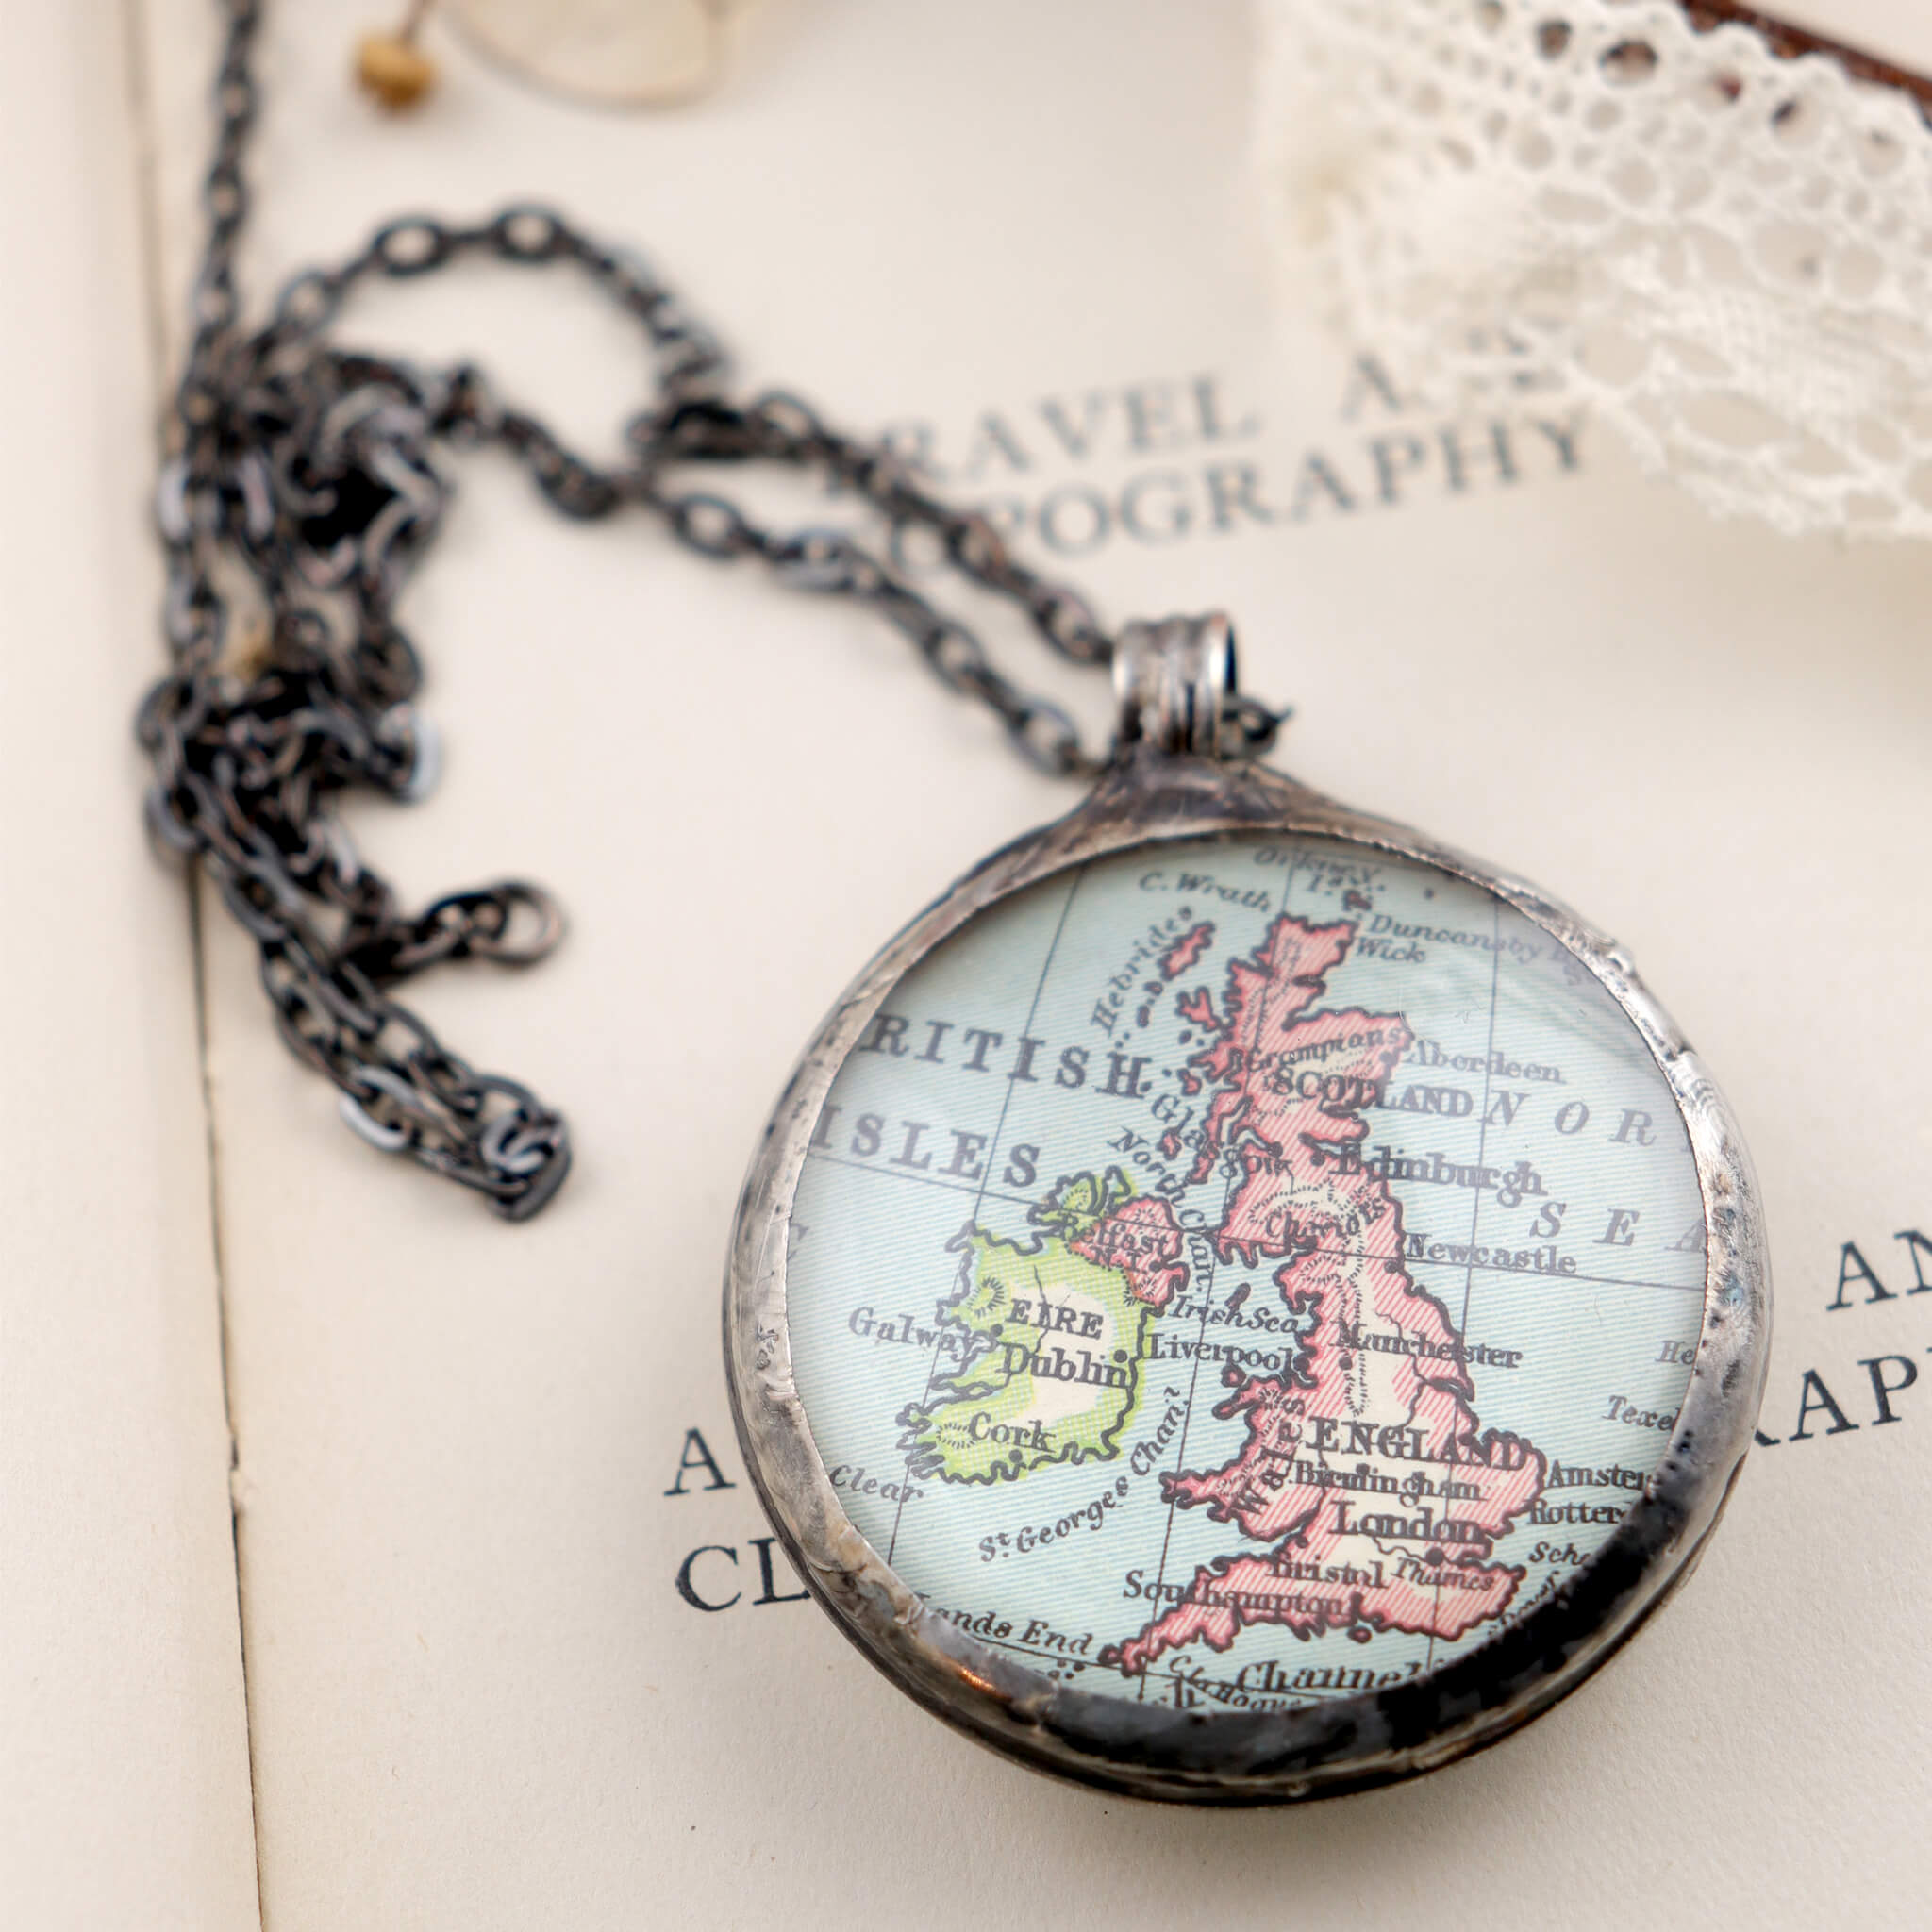 Map of British Isles framed into Tiffany style statement necklace lying on a book